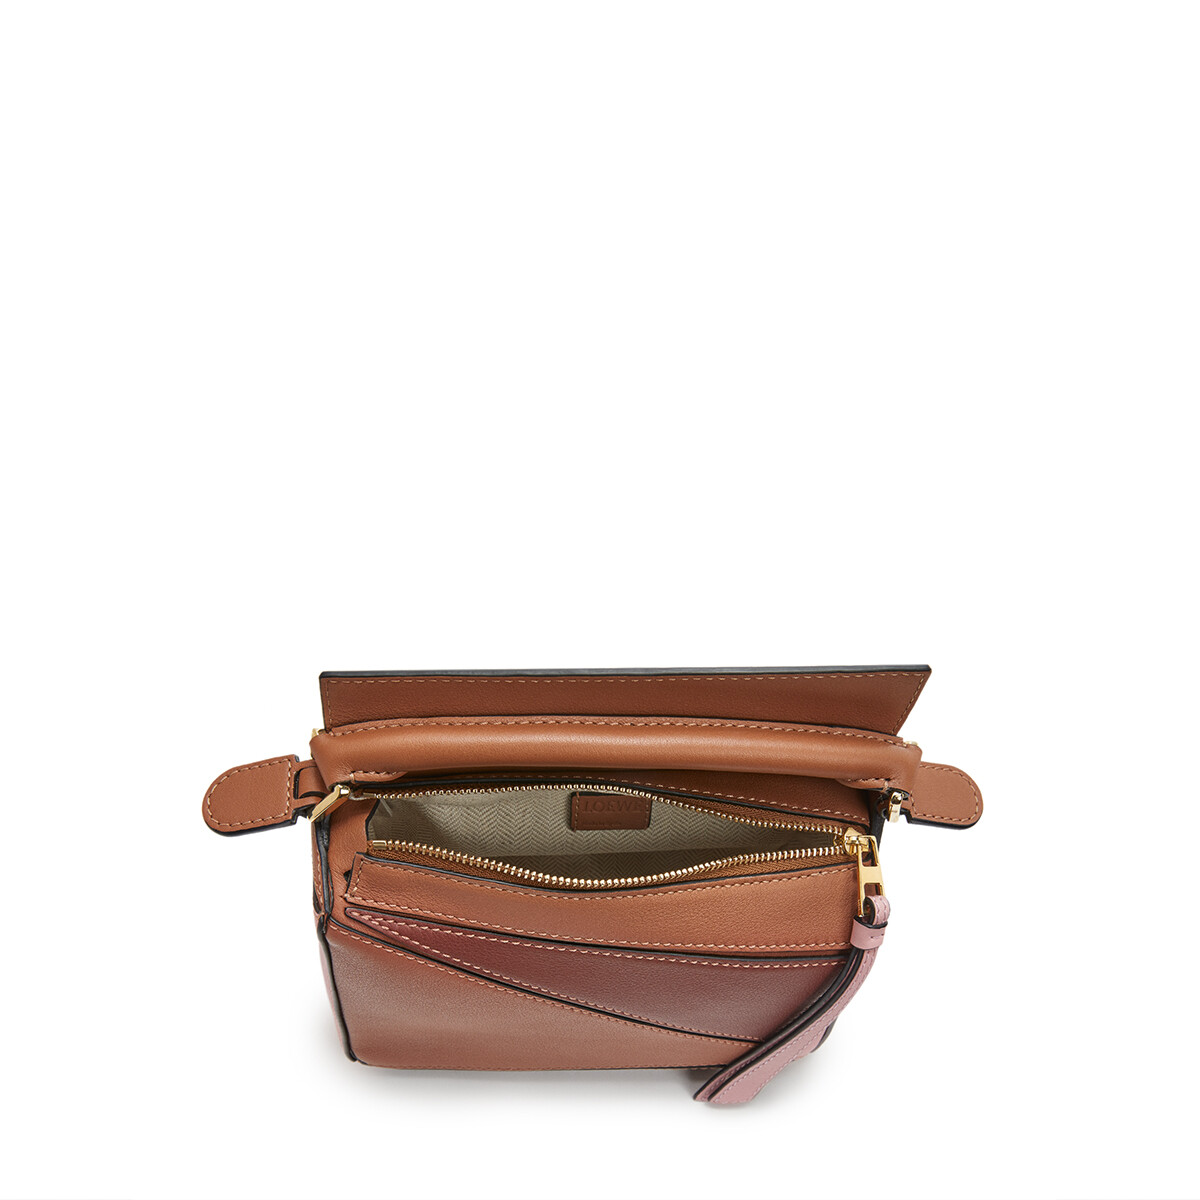 LOEWE Puzzle Mini Bag Tan/Medium Pink front